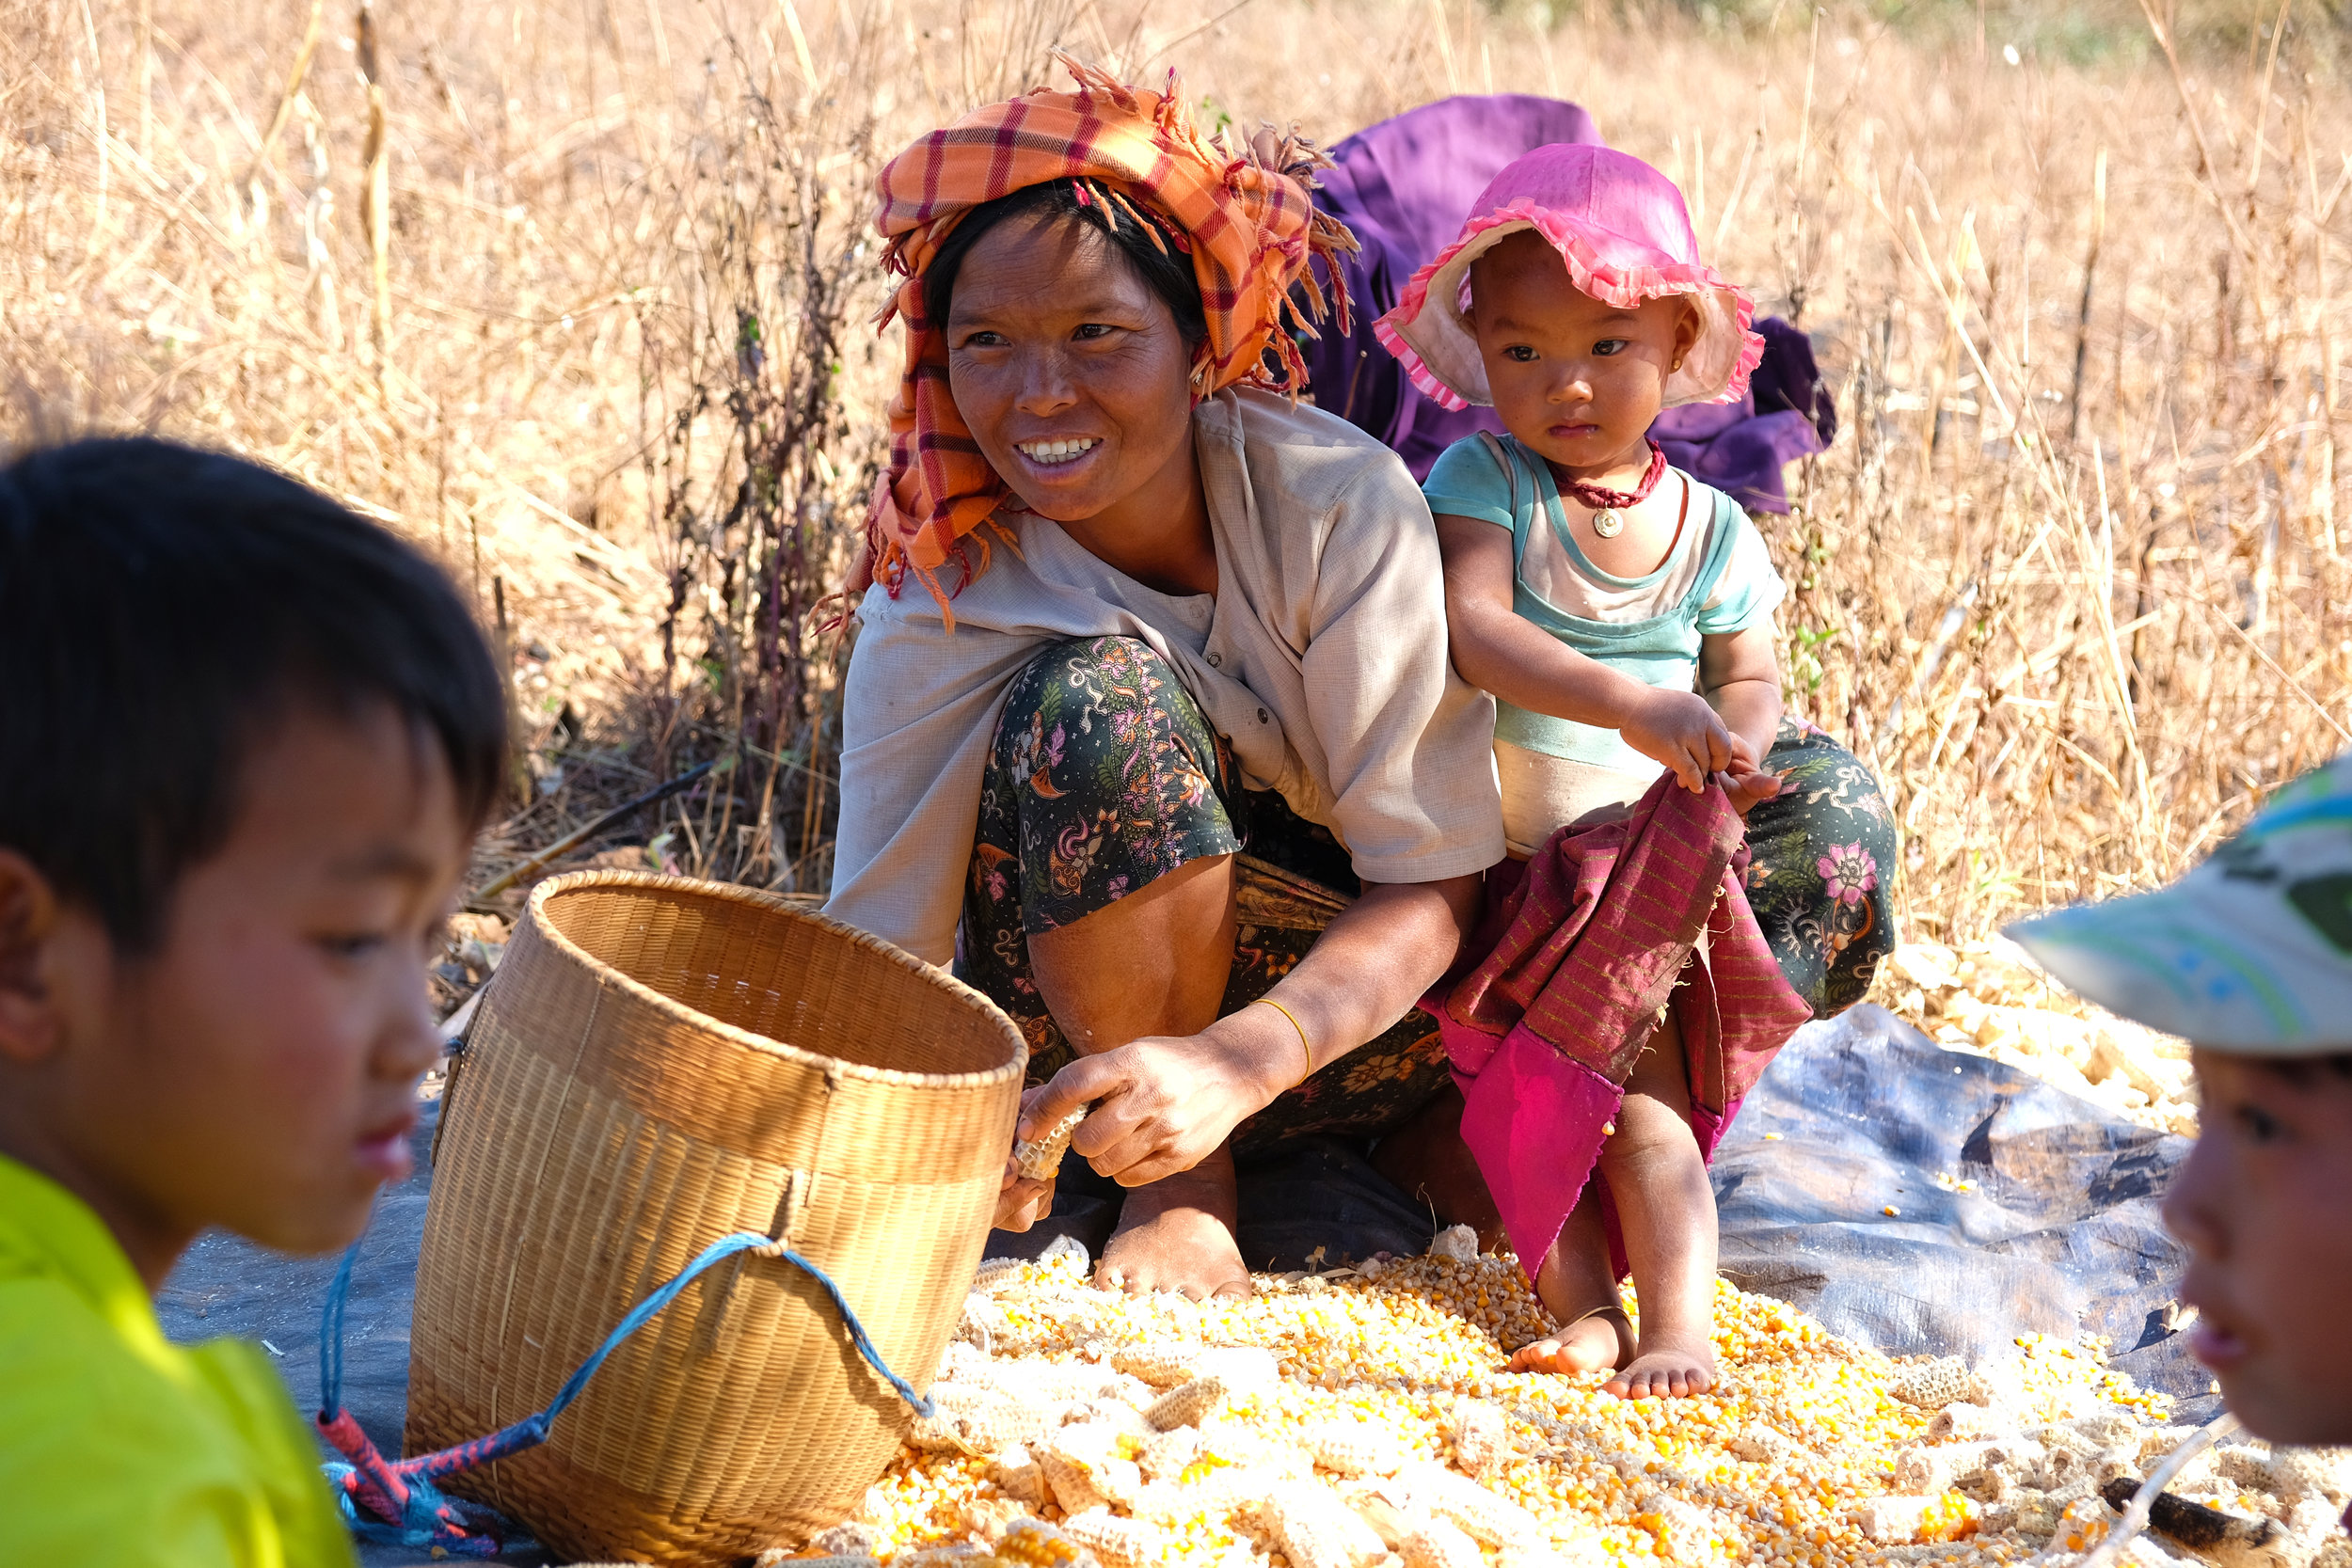 Tantu tribeswoman shucking corn with her children for 40 cents/kilo. Tantu women wear colorful headscarves because they believe women to be dragons.